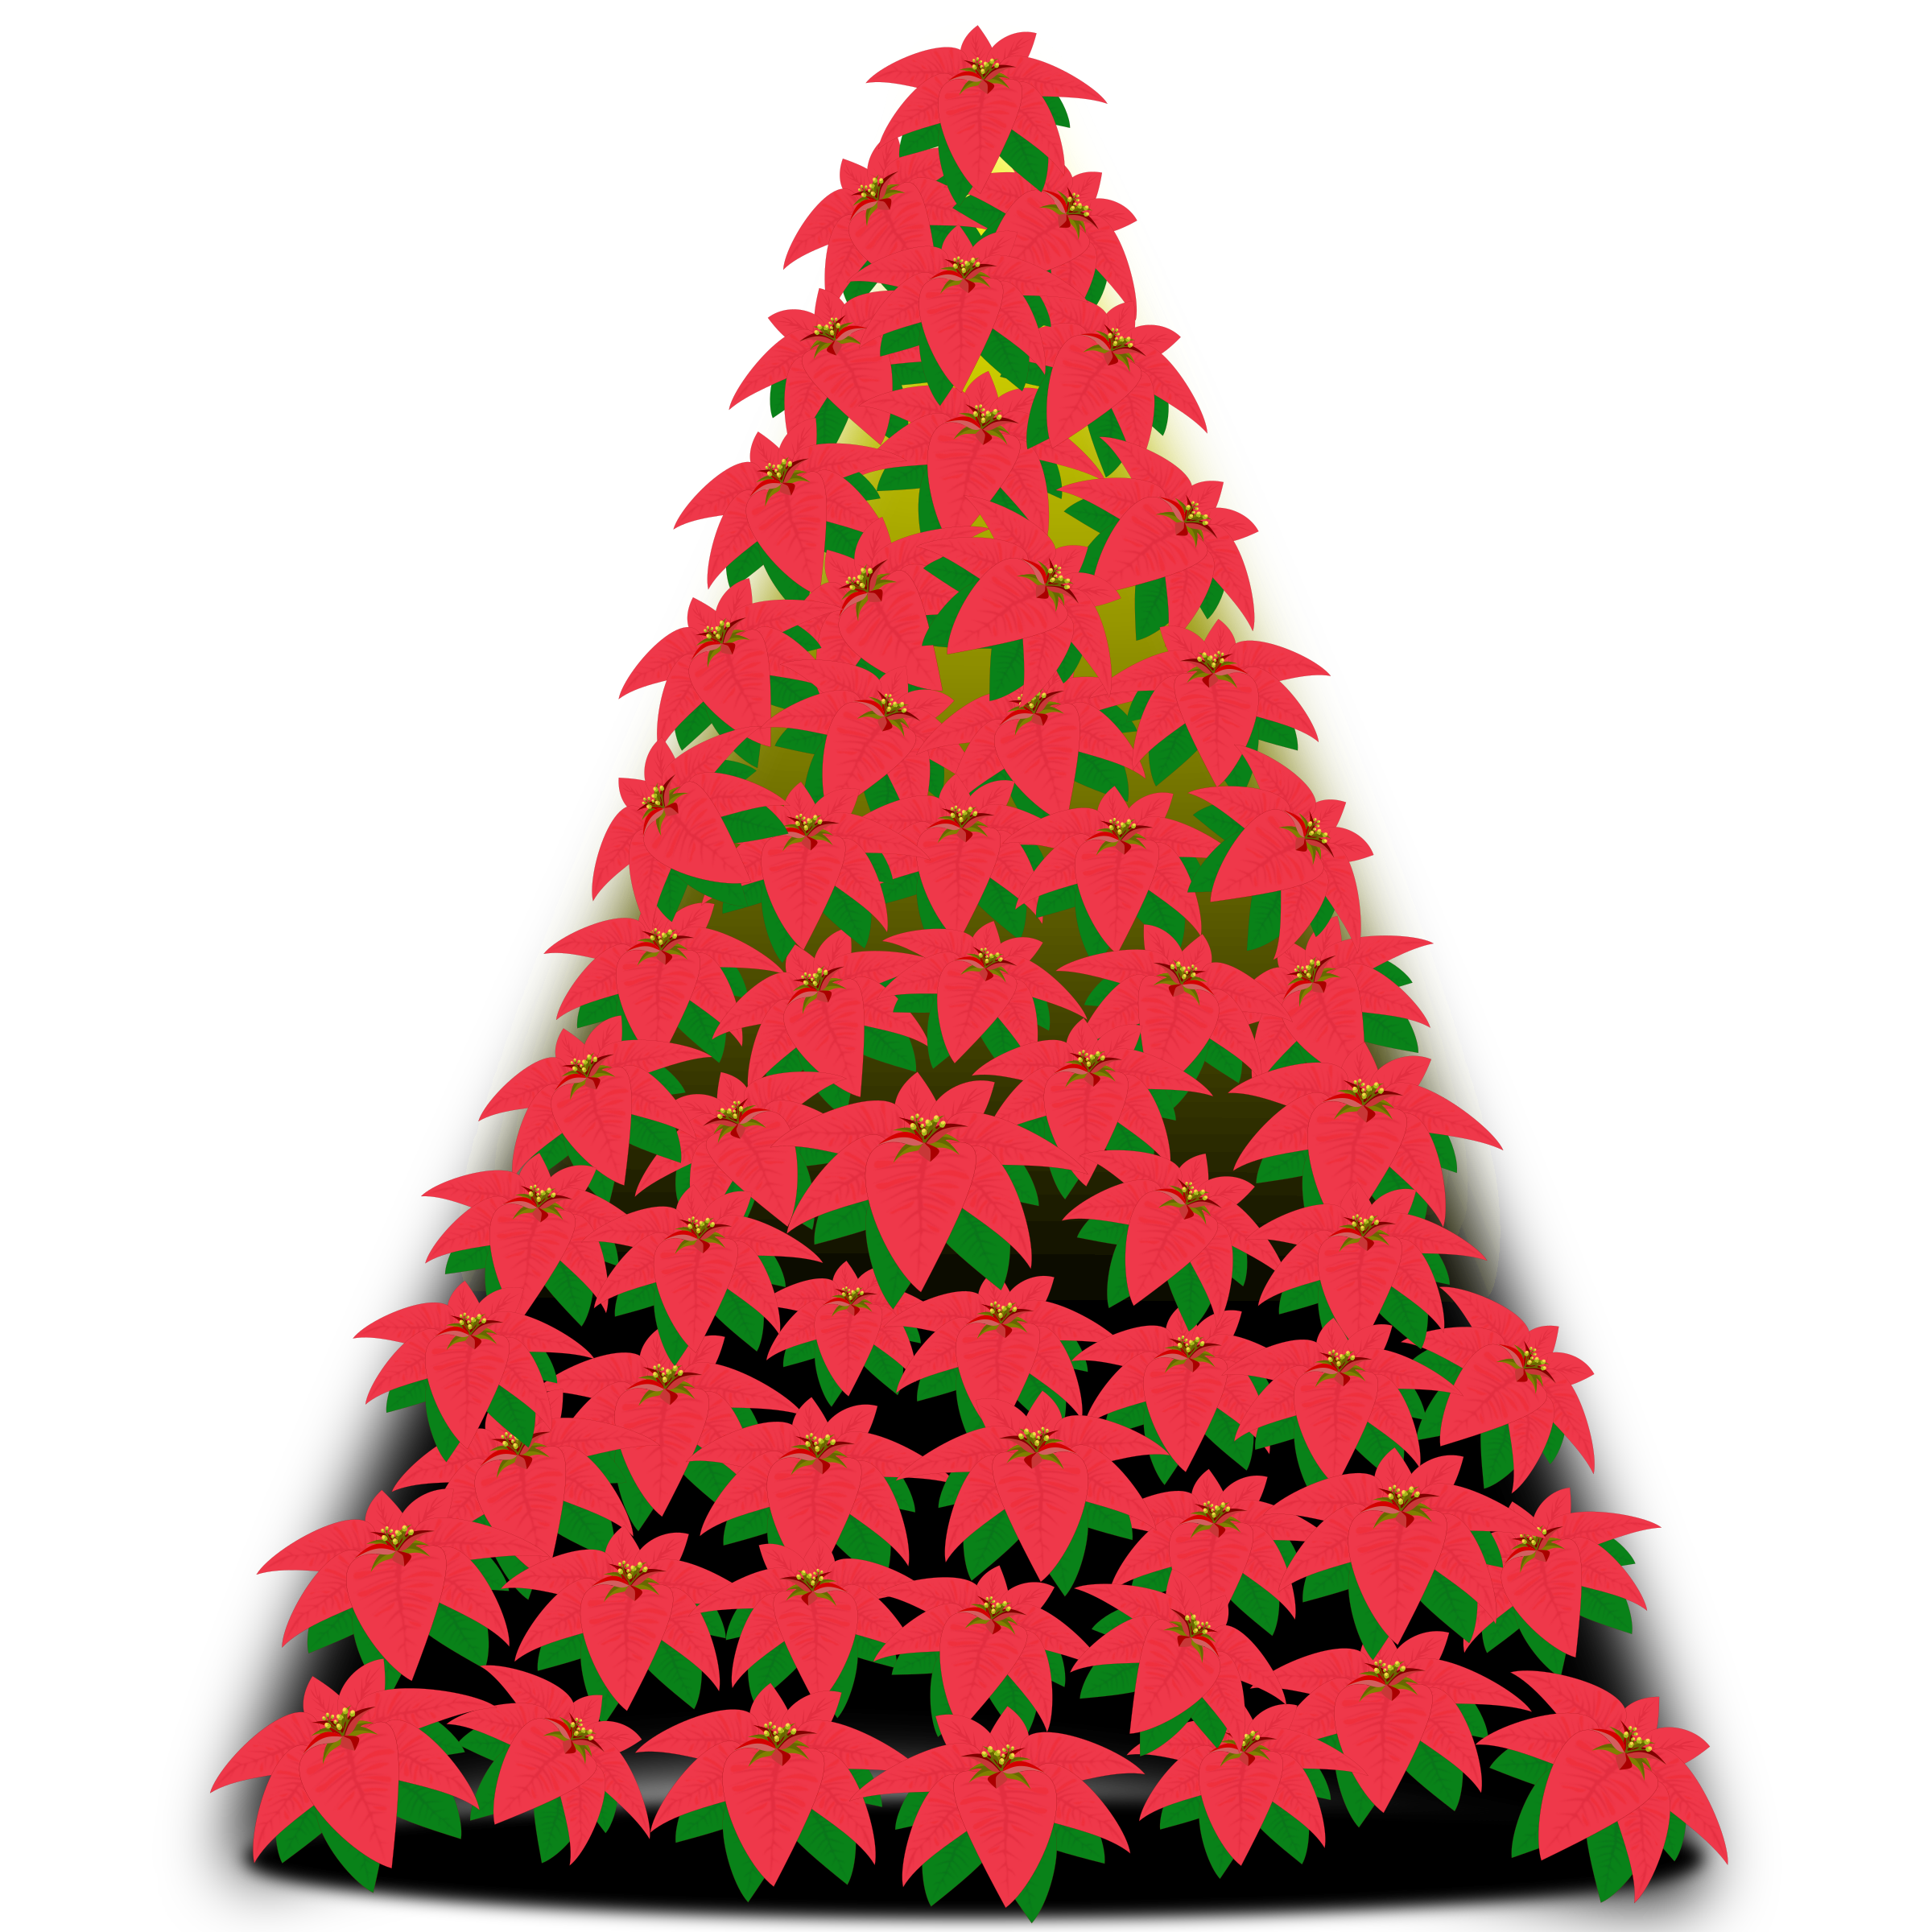 Christmas tree by jpenrici